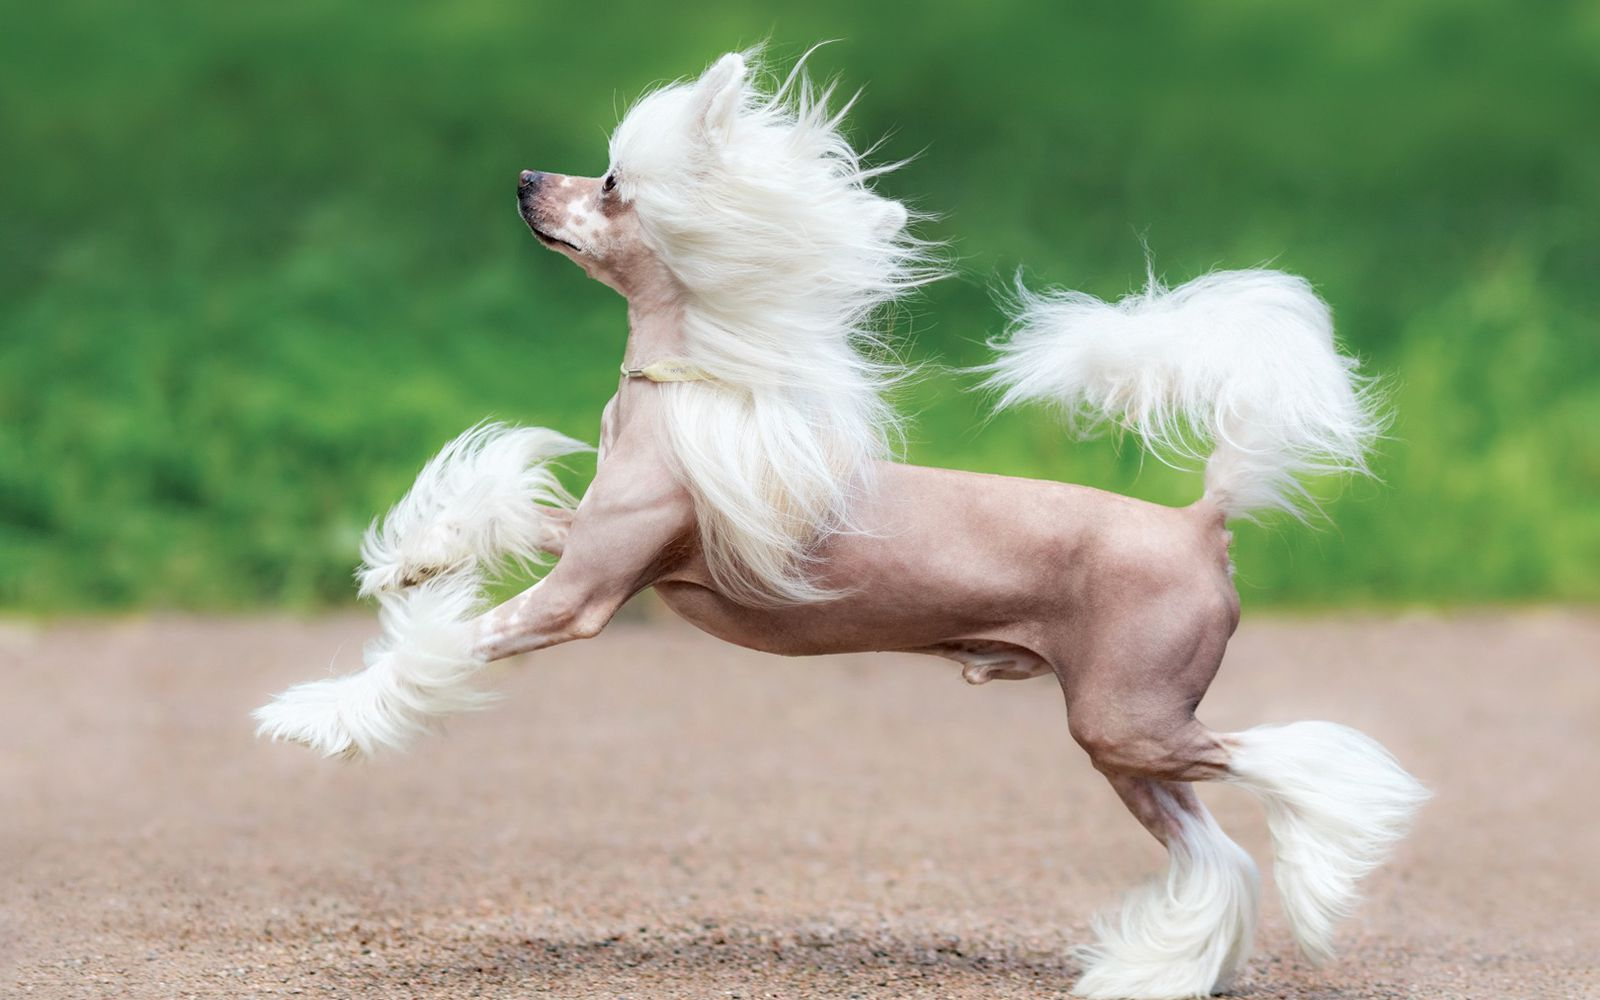 Chinese Crested - Lifestyle